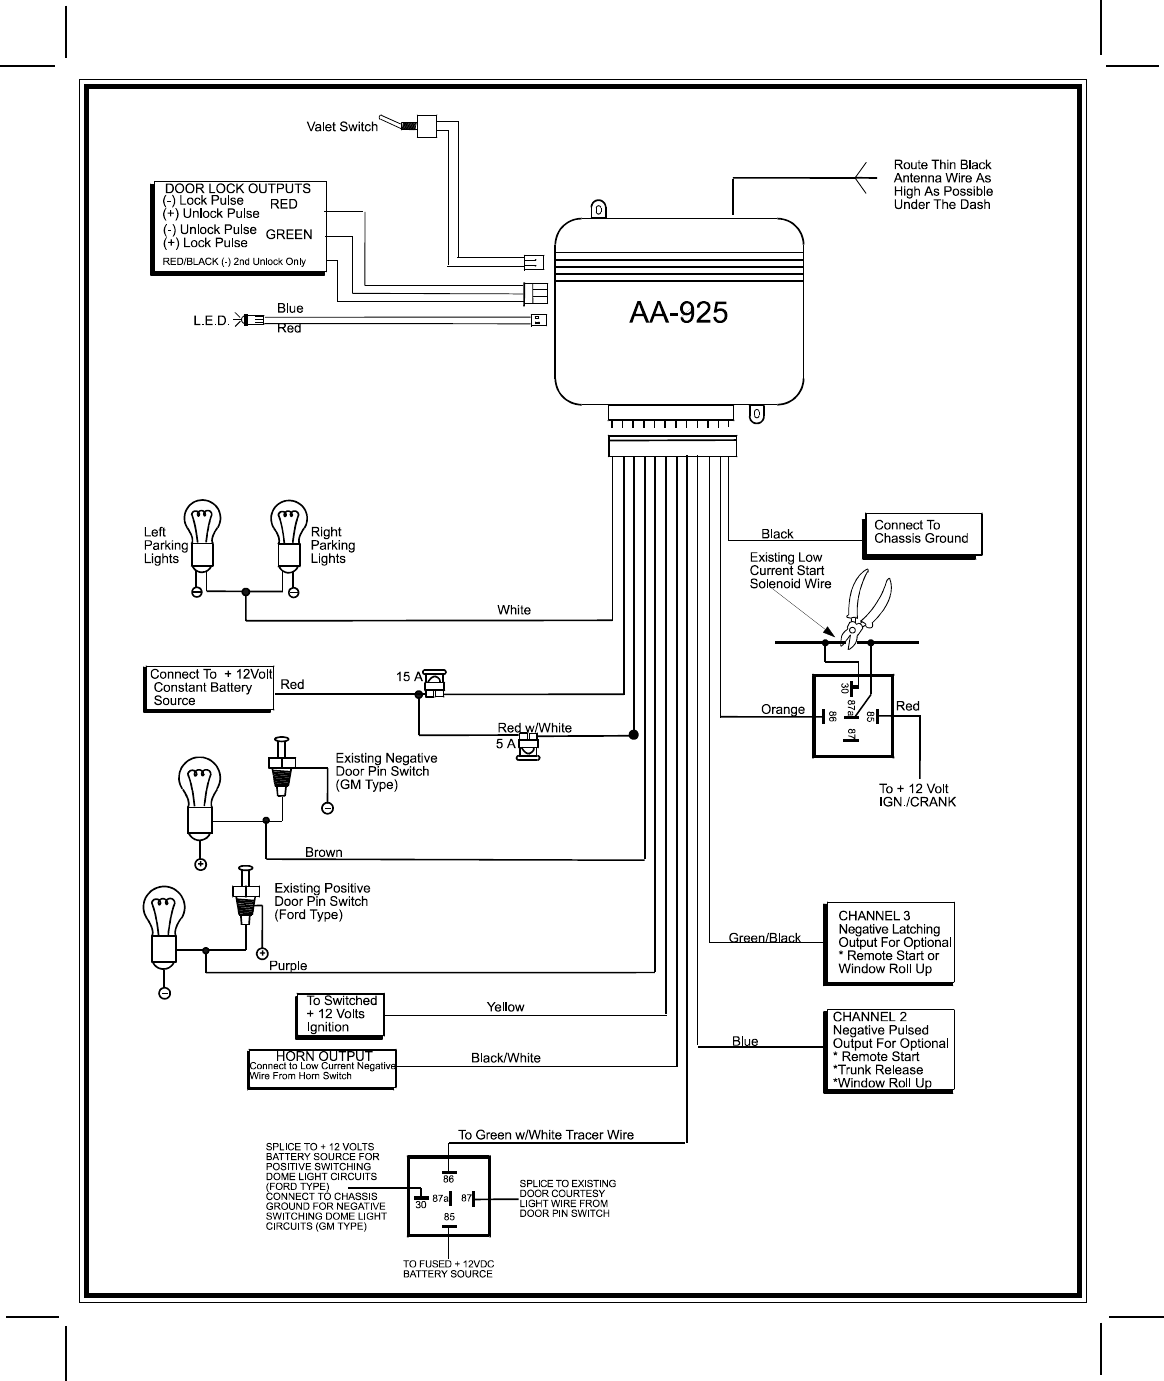 728e5939 5a52 46a4 ba14 2e72baef2843 bg8 page 8 of audiovox automobile alarm aa925 user guide k9 car alarm wiring diagram at crackthecode.co